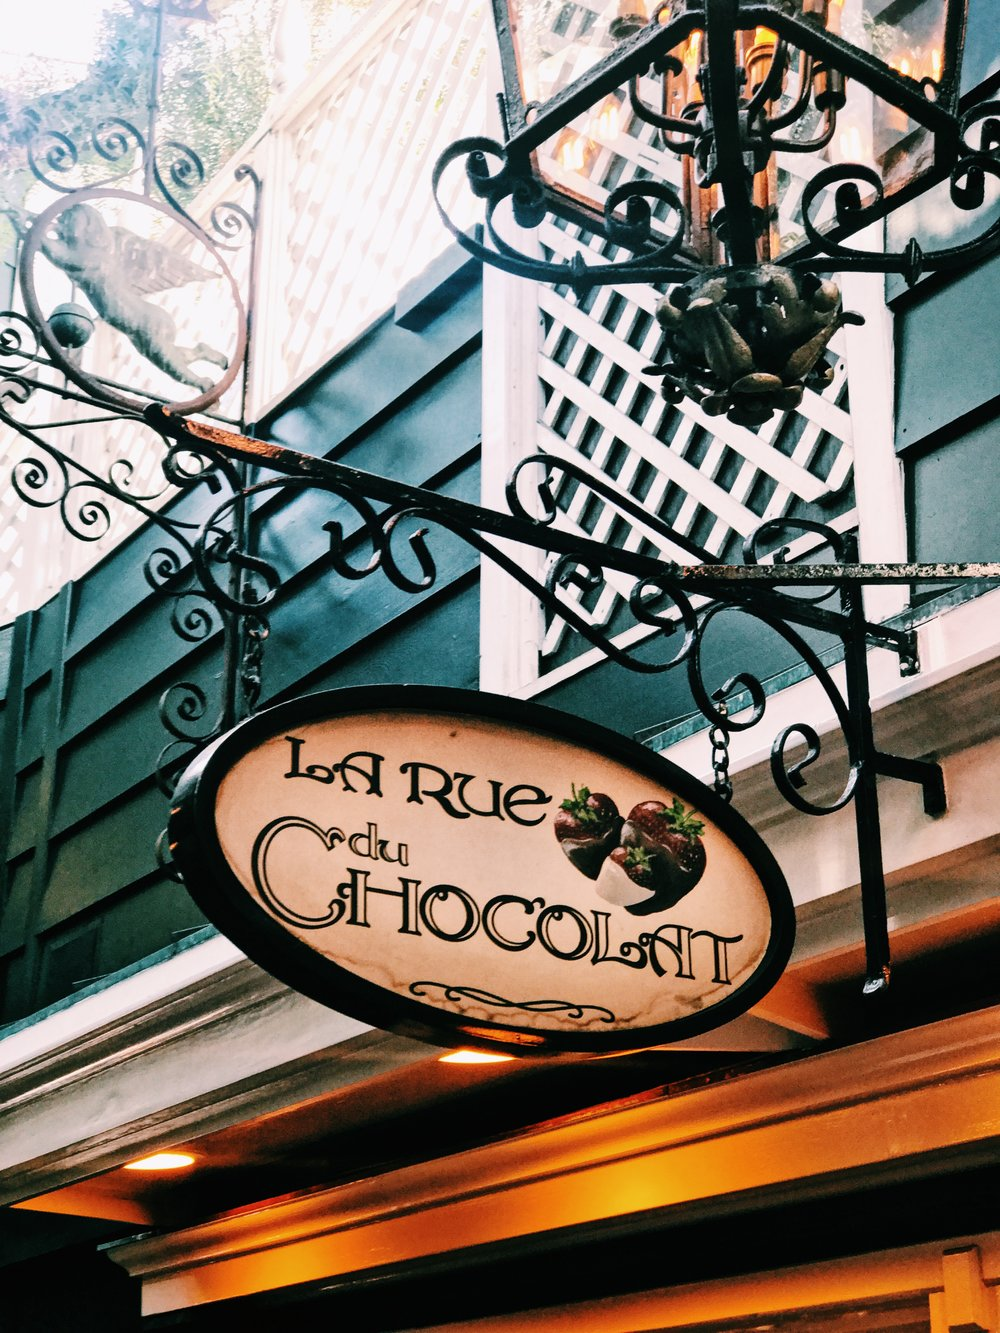 The table we had out first date is directly across from the sweetest little chocolate shop. It is literally a dream, so quaint, charming and cute.